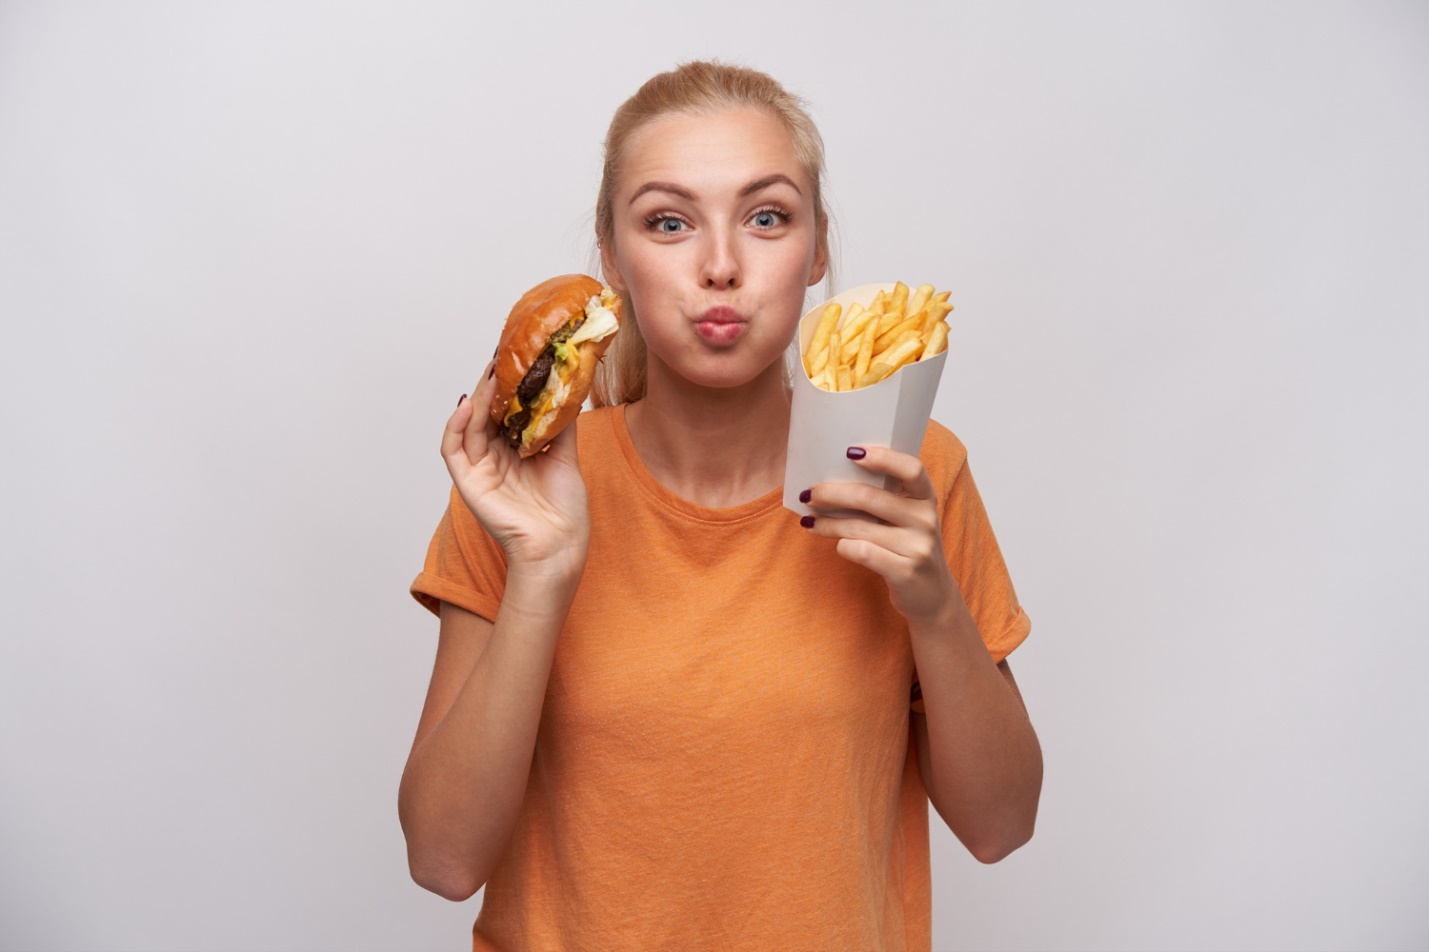 C:\Users\Dell\Downloads\portrait-charming-pretty-young-blonde-woman-holding-junk-food-looking-joyfully-camera-puffing-out-cheeks-being-excited-about-tasty-dinner-isolated-white-background.jpg